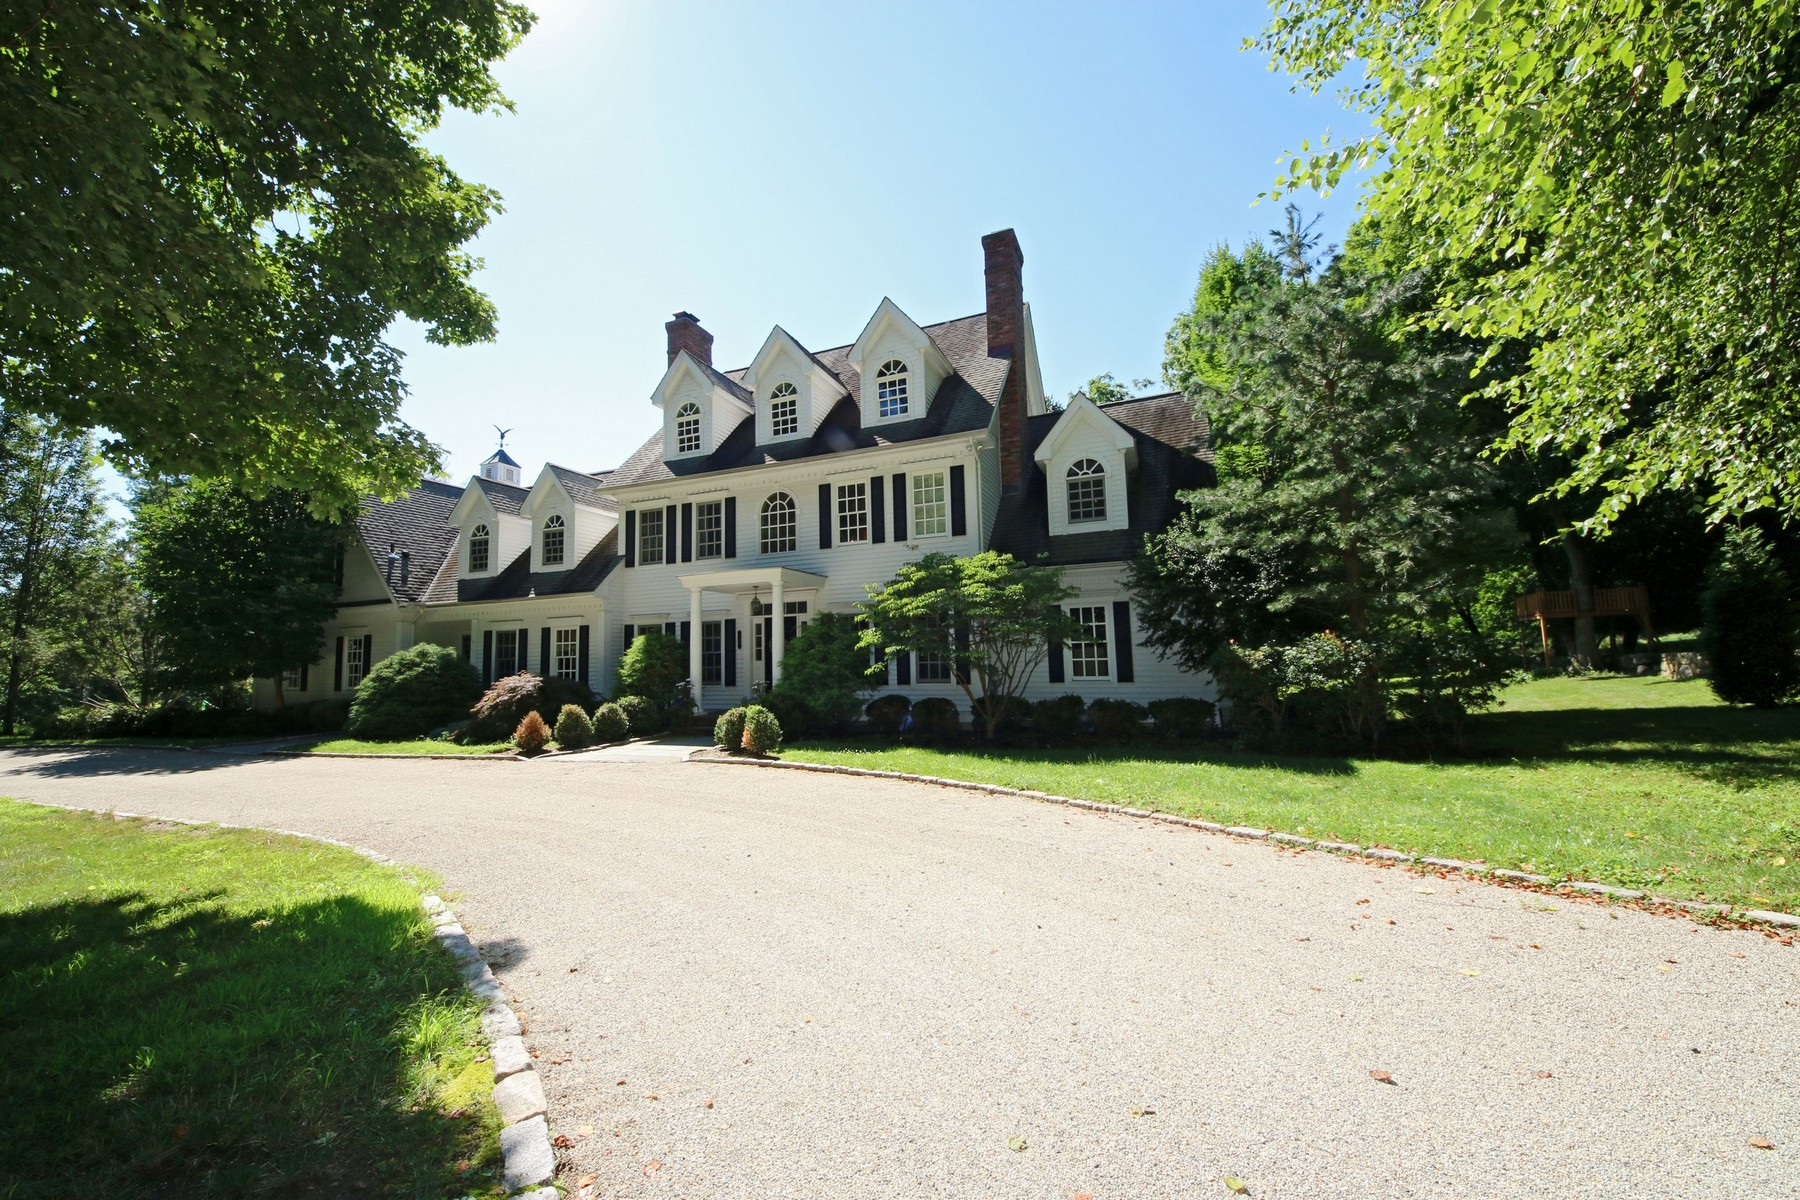 Single Family Home for Sale at STATELY GREENFIELD HILL COLONIAL 429 Verna Hill Road Fairfield, Connecticut 06824 United States